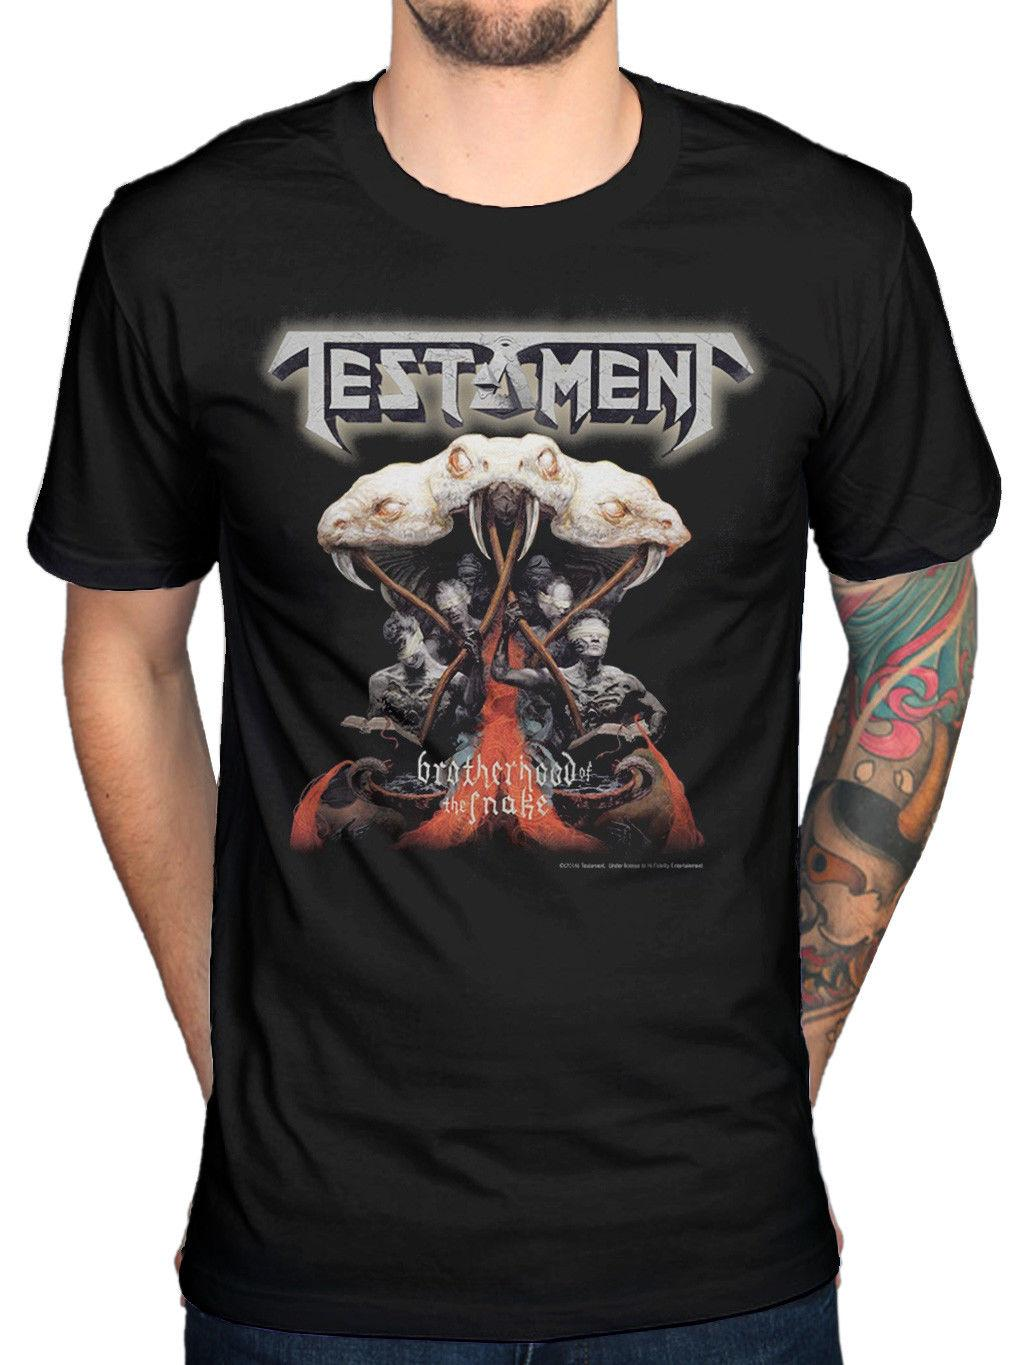 T-shirt ufficiale Testament Brotherhood Of The Snake The Legacy Souls Of Black 2018 New Men tee 2018 fashion T-shirt Summer